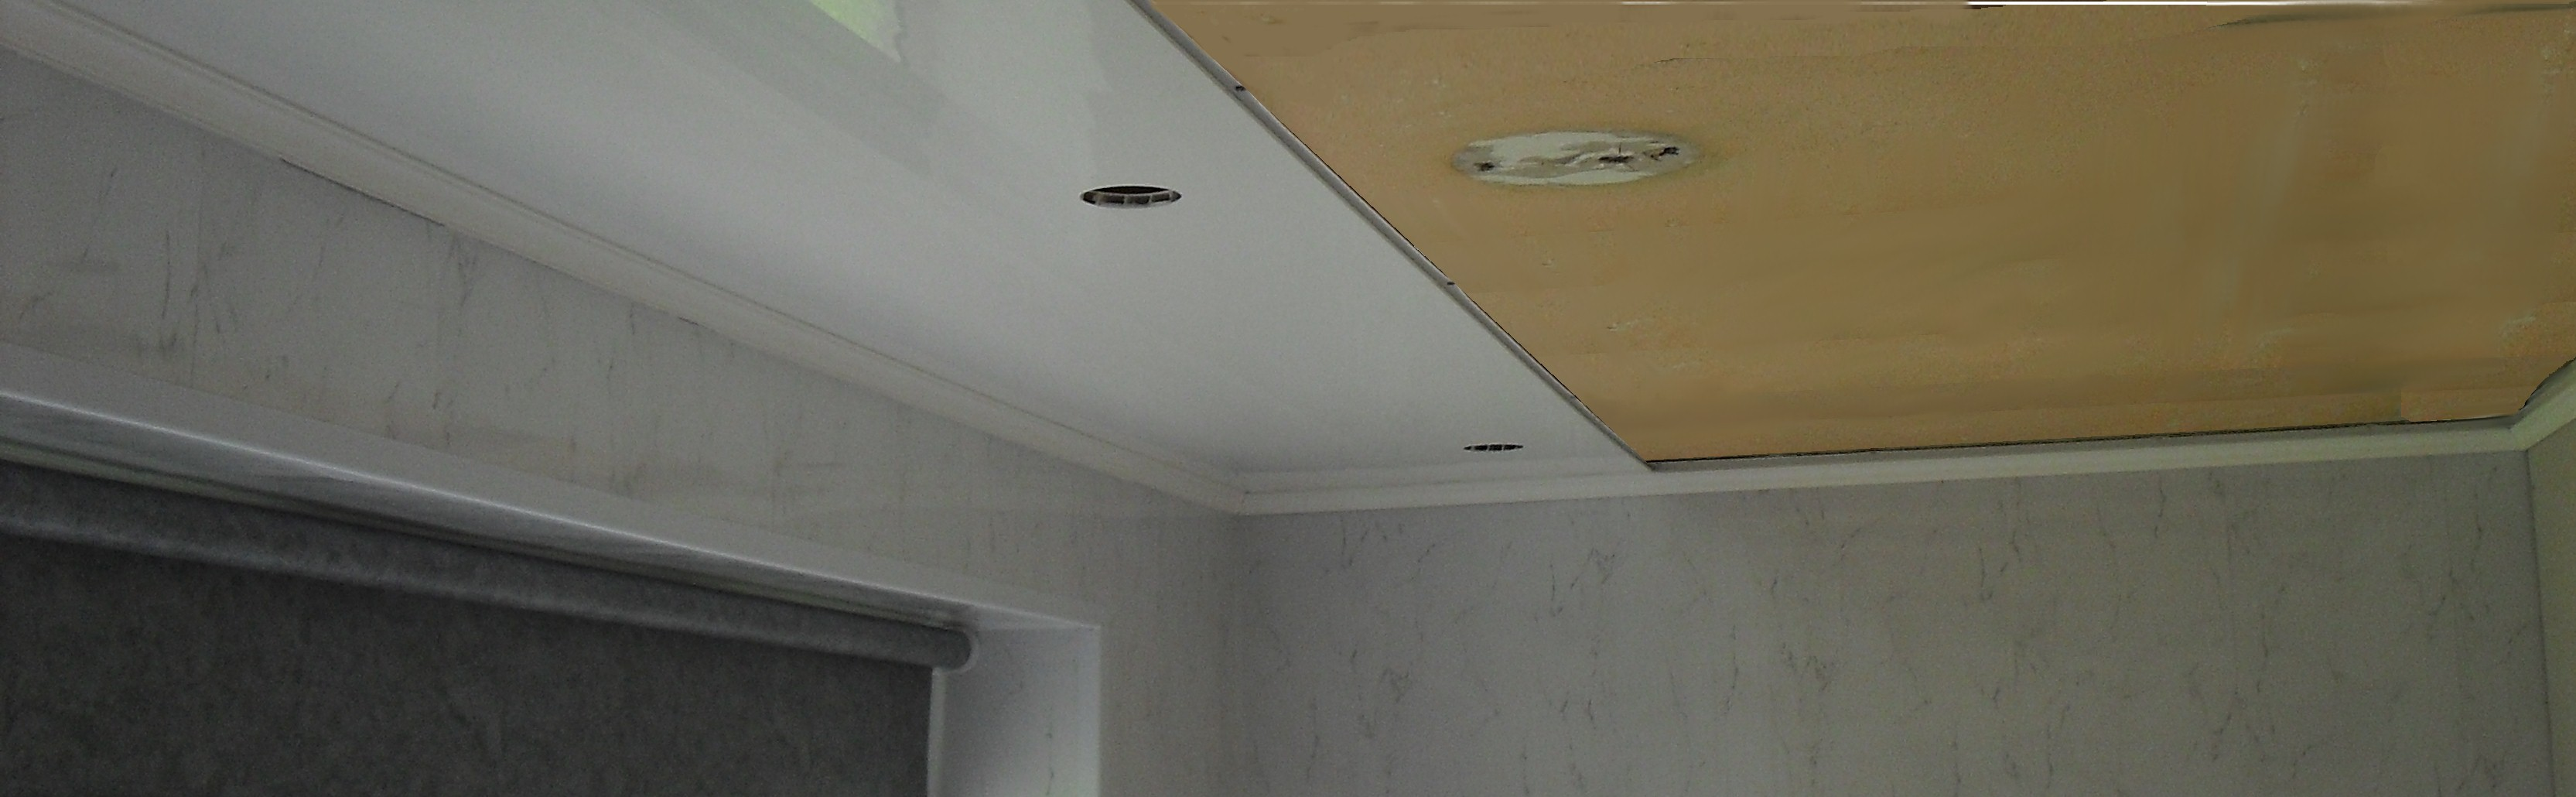 how to fit ceiling panels2 - How To Fit Ceiling Panels